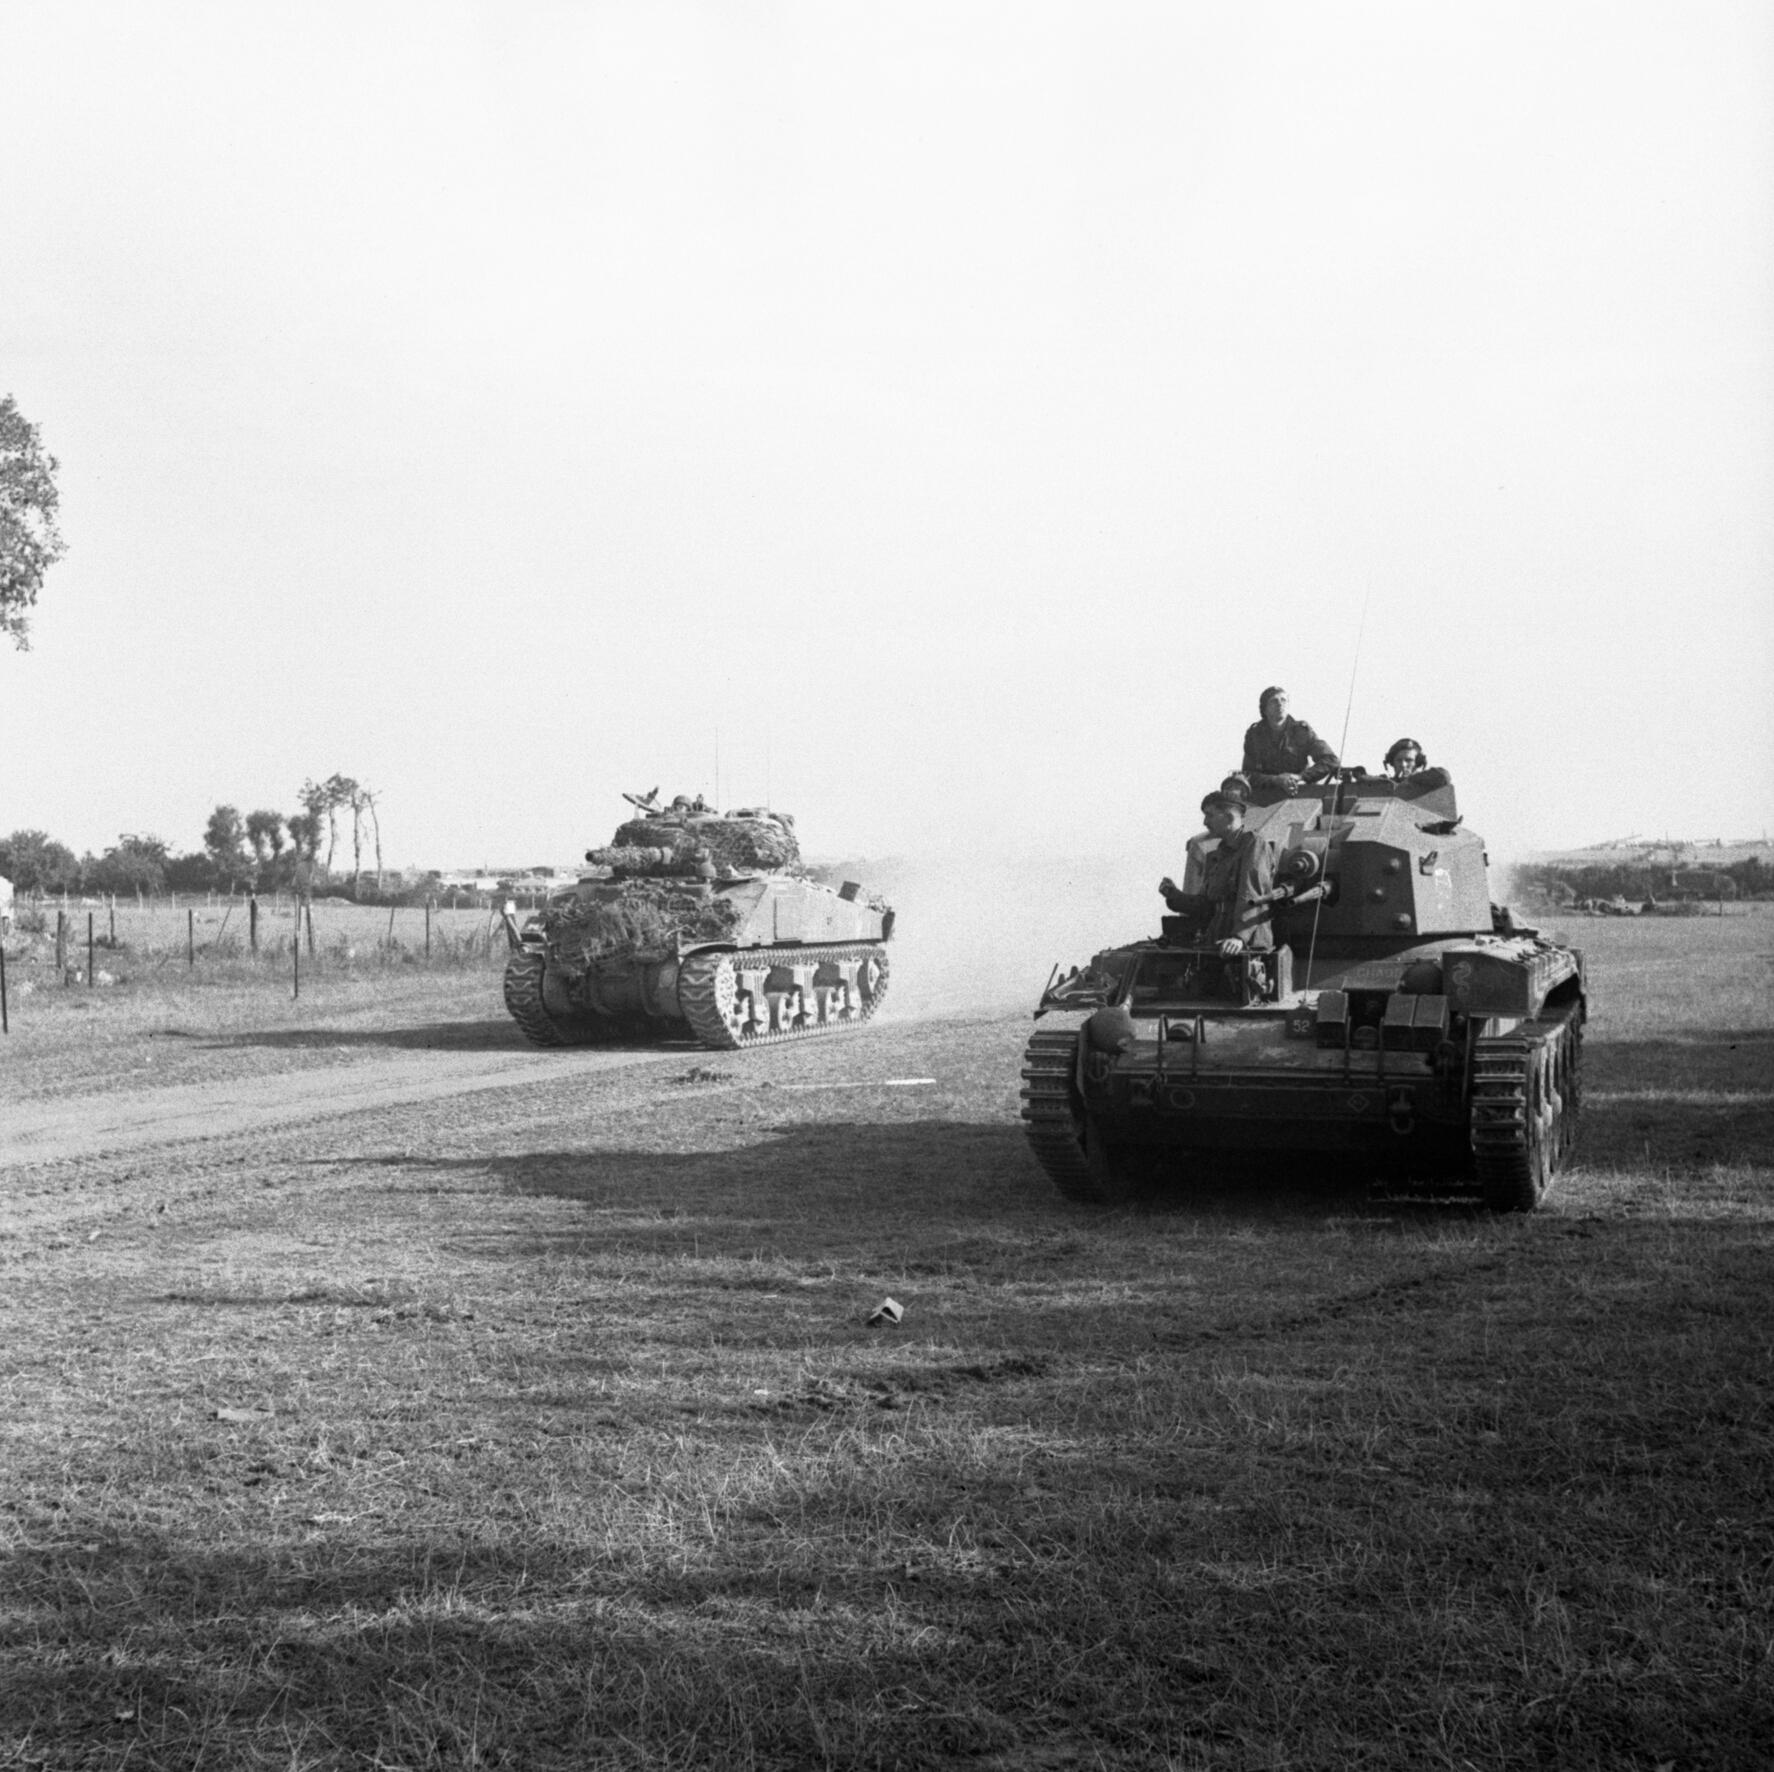 A Sherman and a Crusader A/A tank